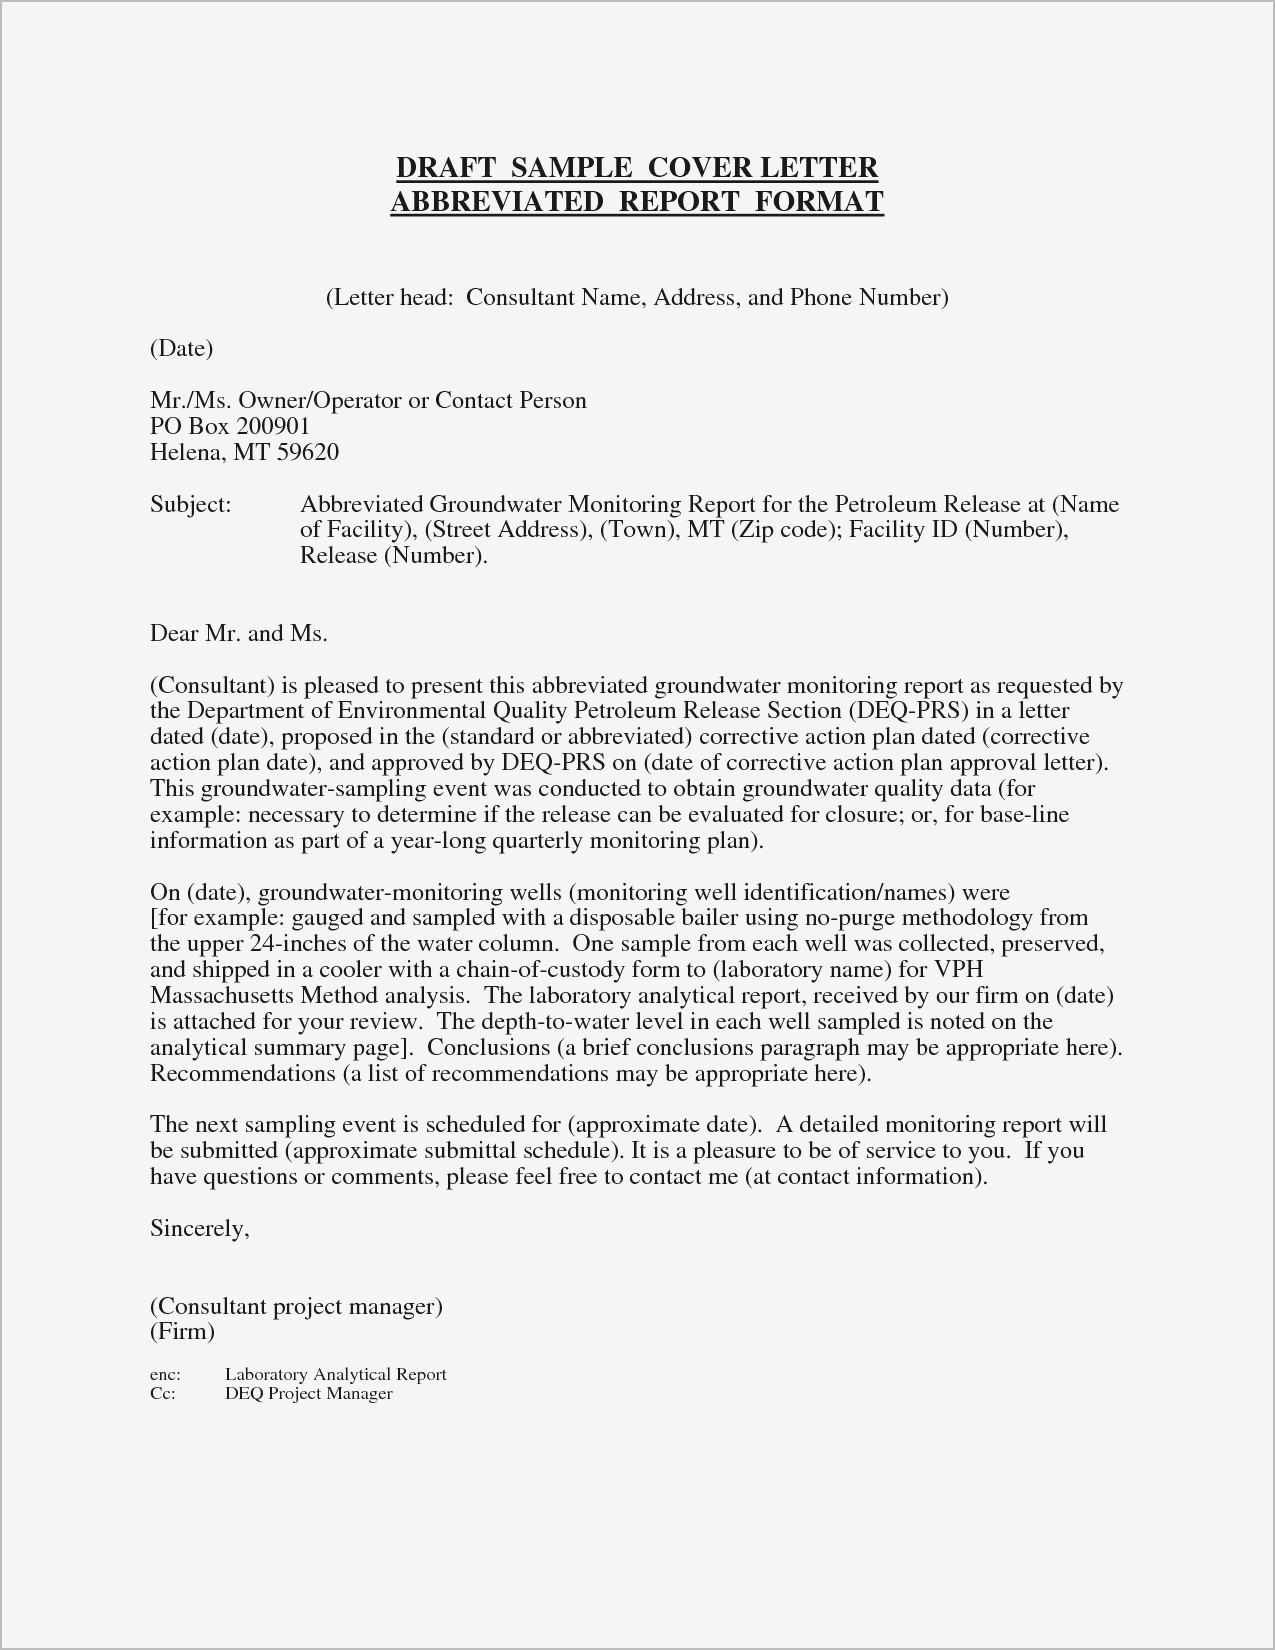 Modern Cover Letter Template - Free Sample Cover Letters Ideas